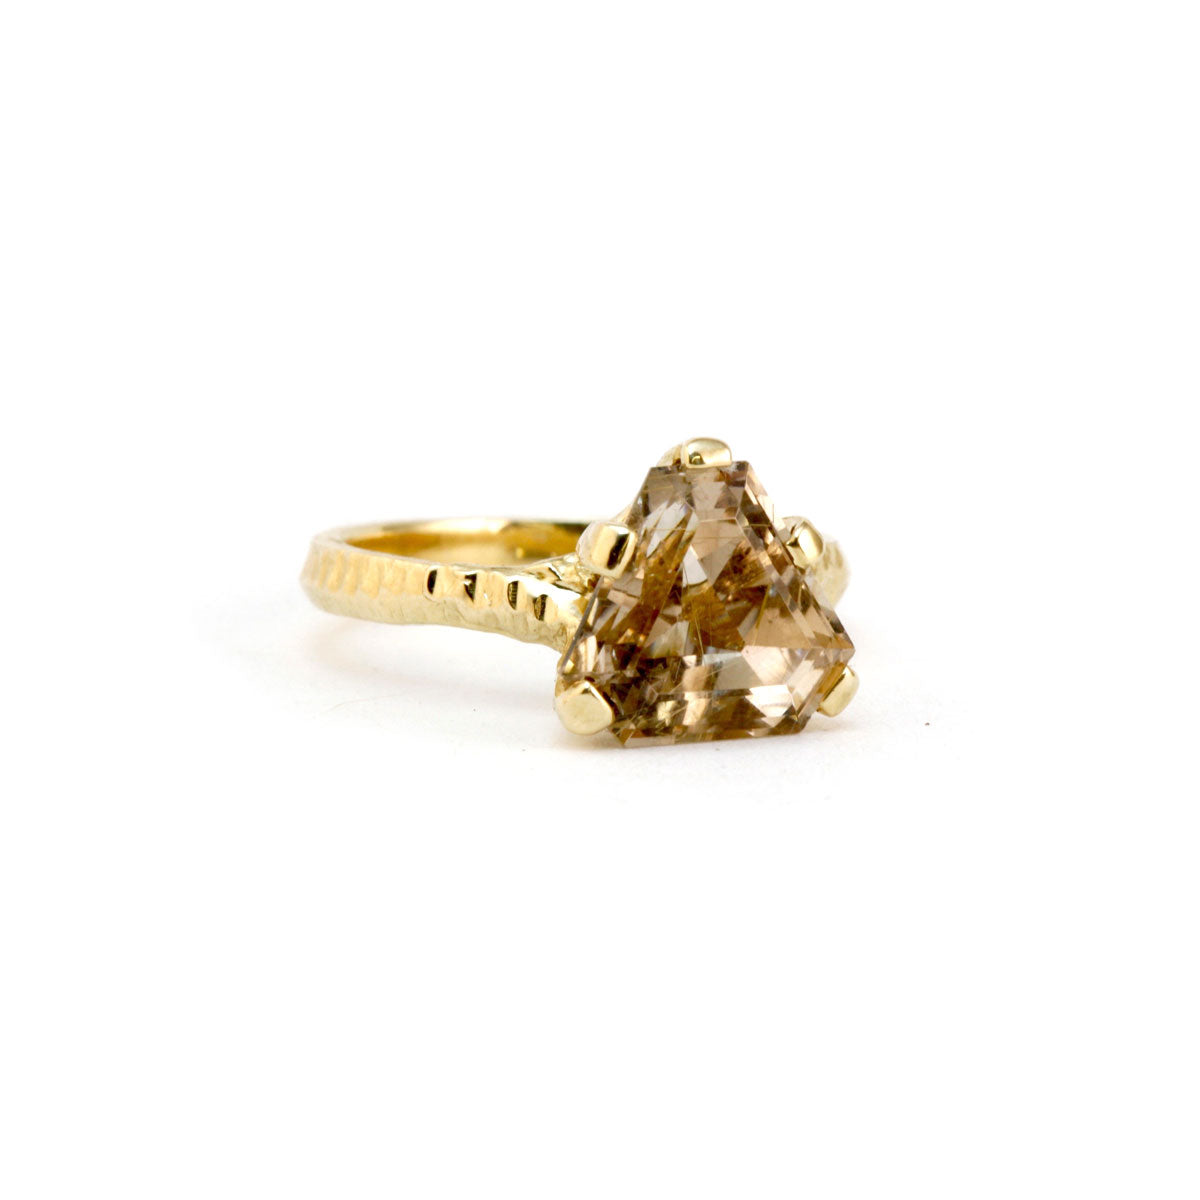 9ct gold textured ring with trilliant cut rootilated quartz